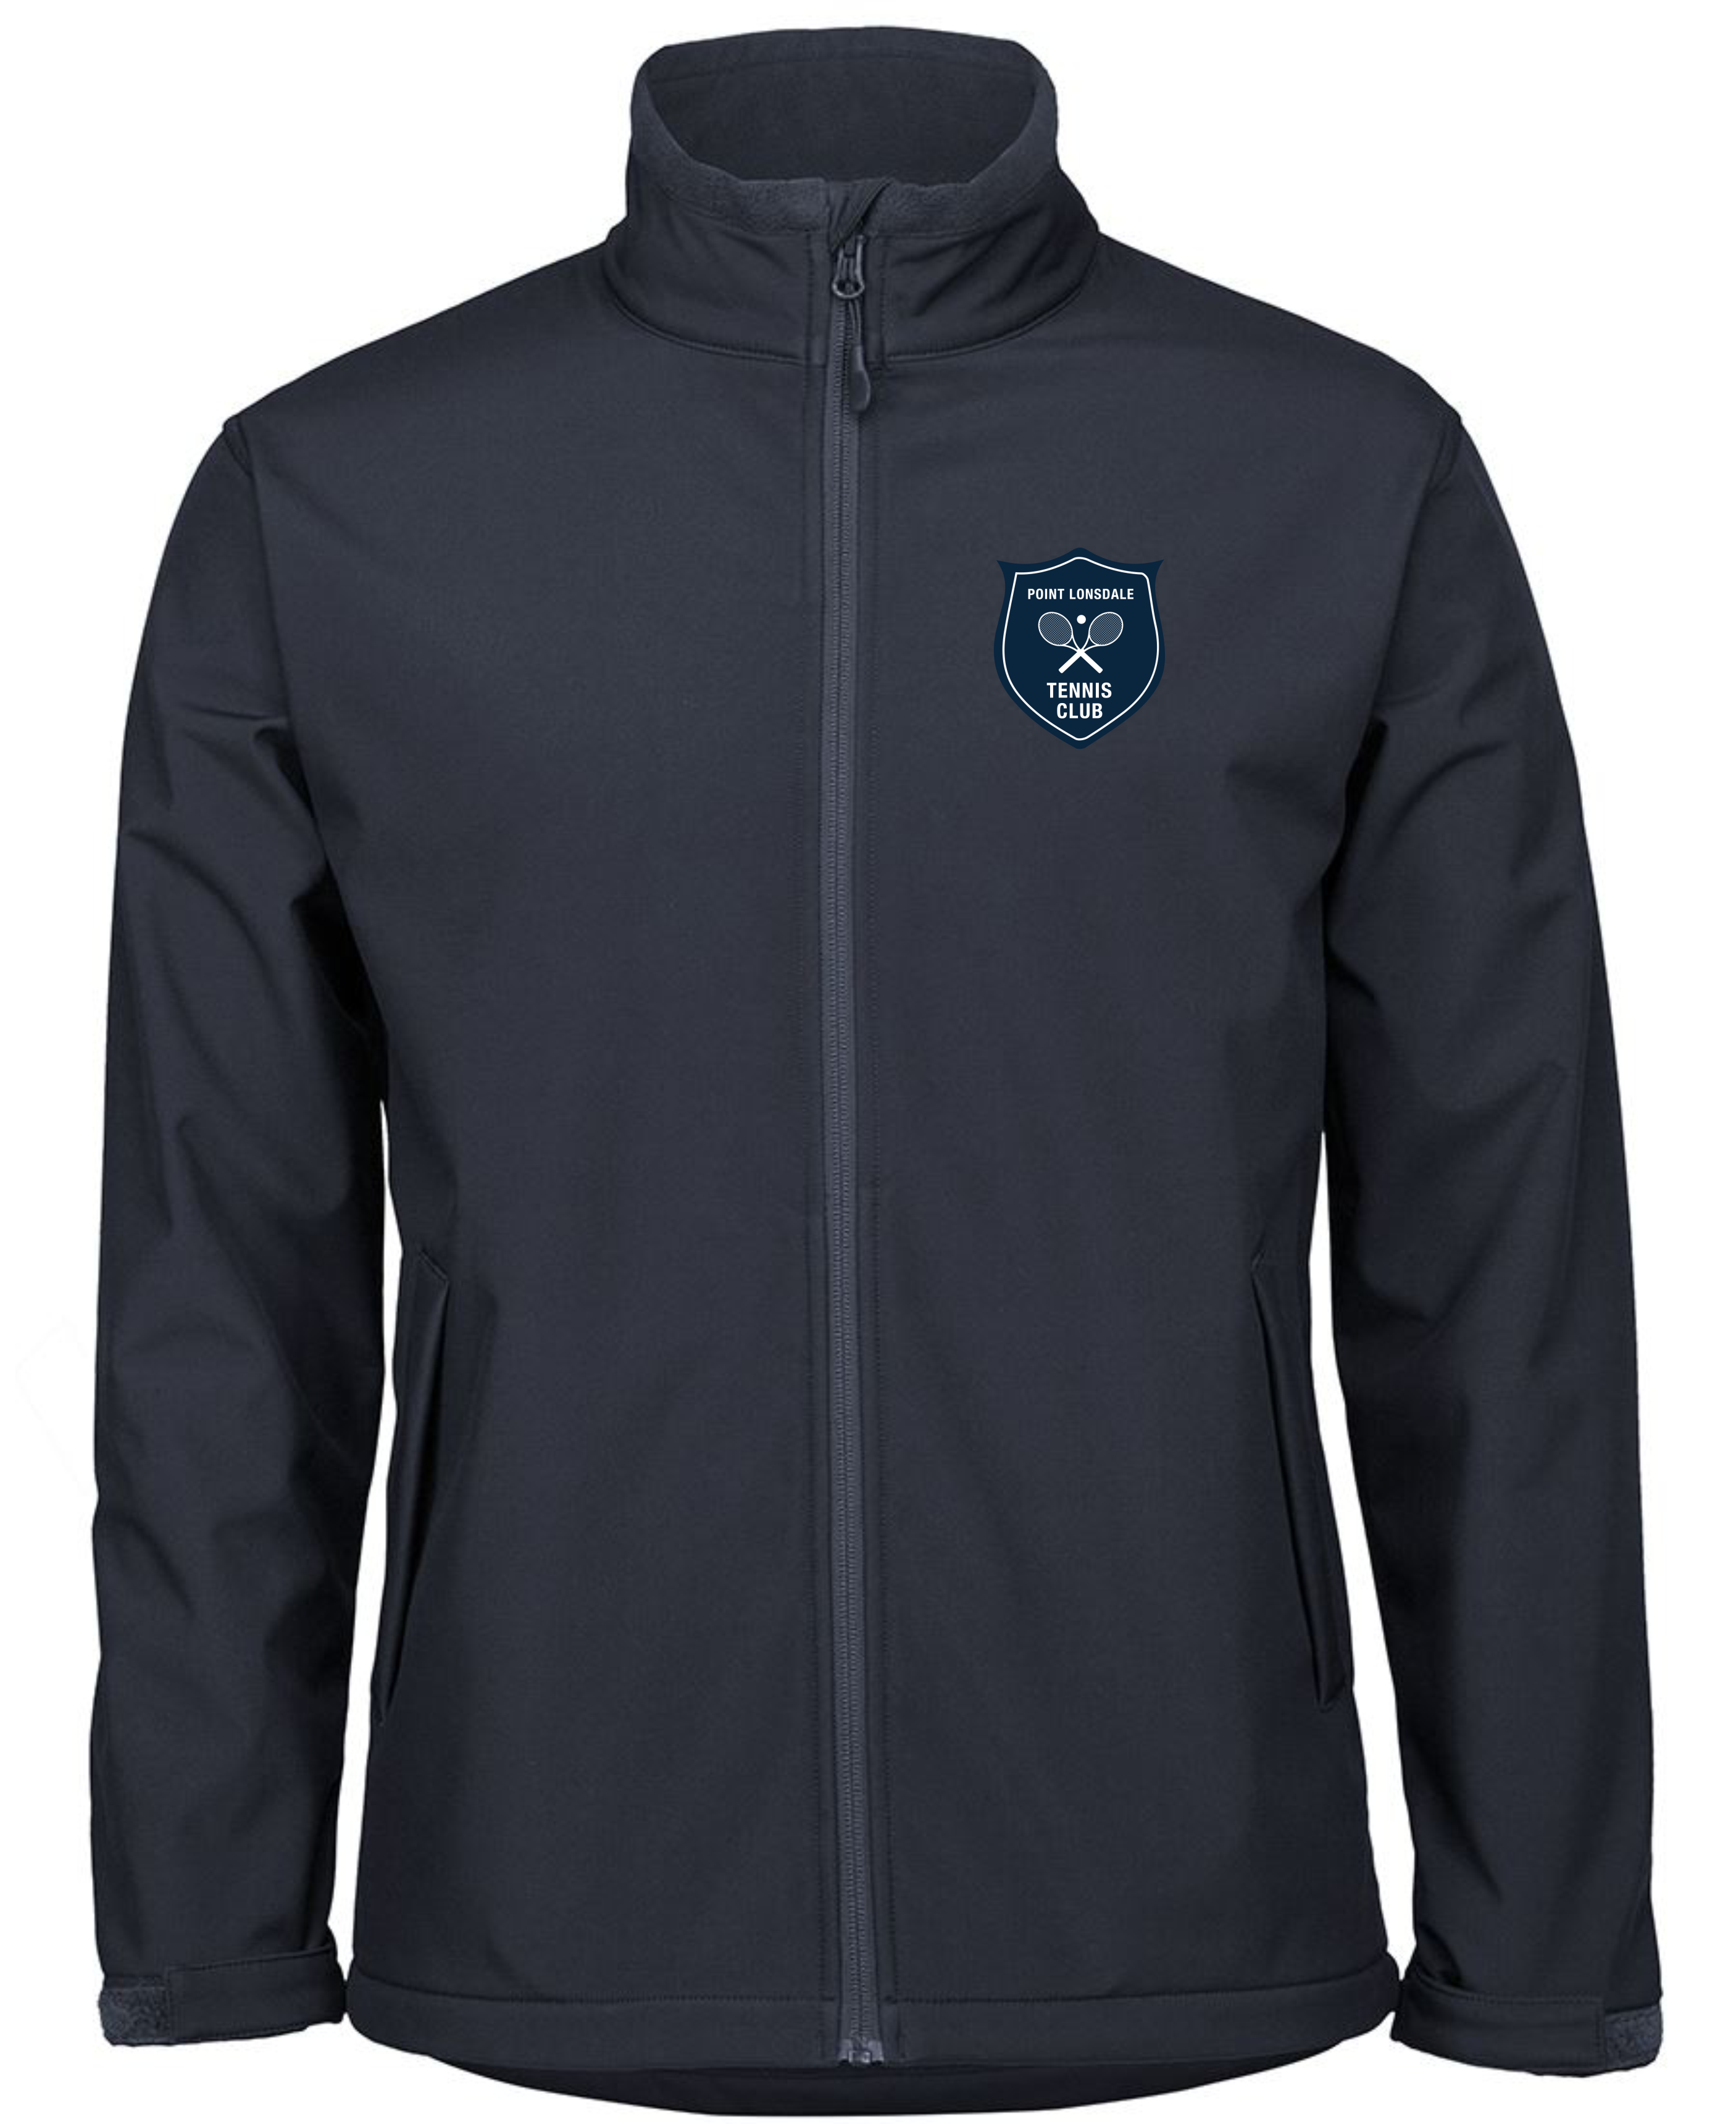 Kids Water Resistant Soft Shell Jacket in Navy